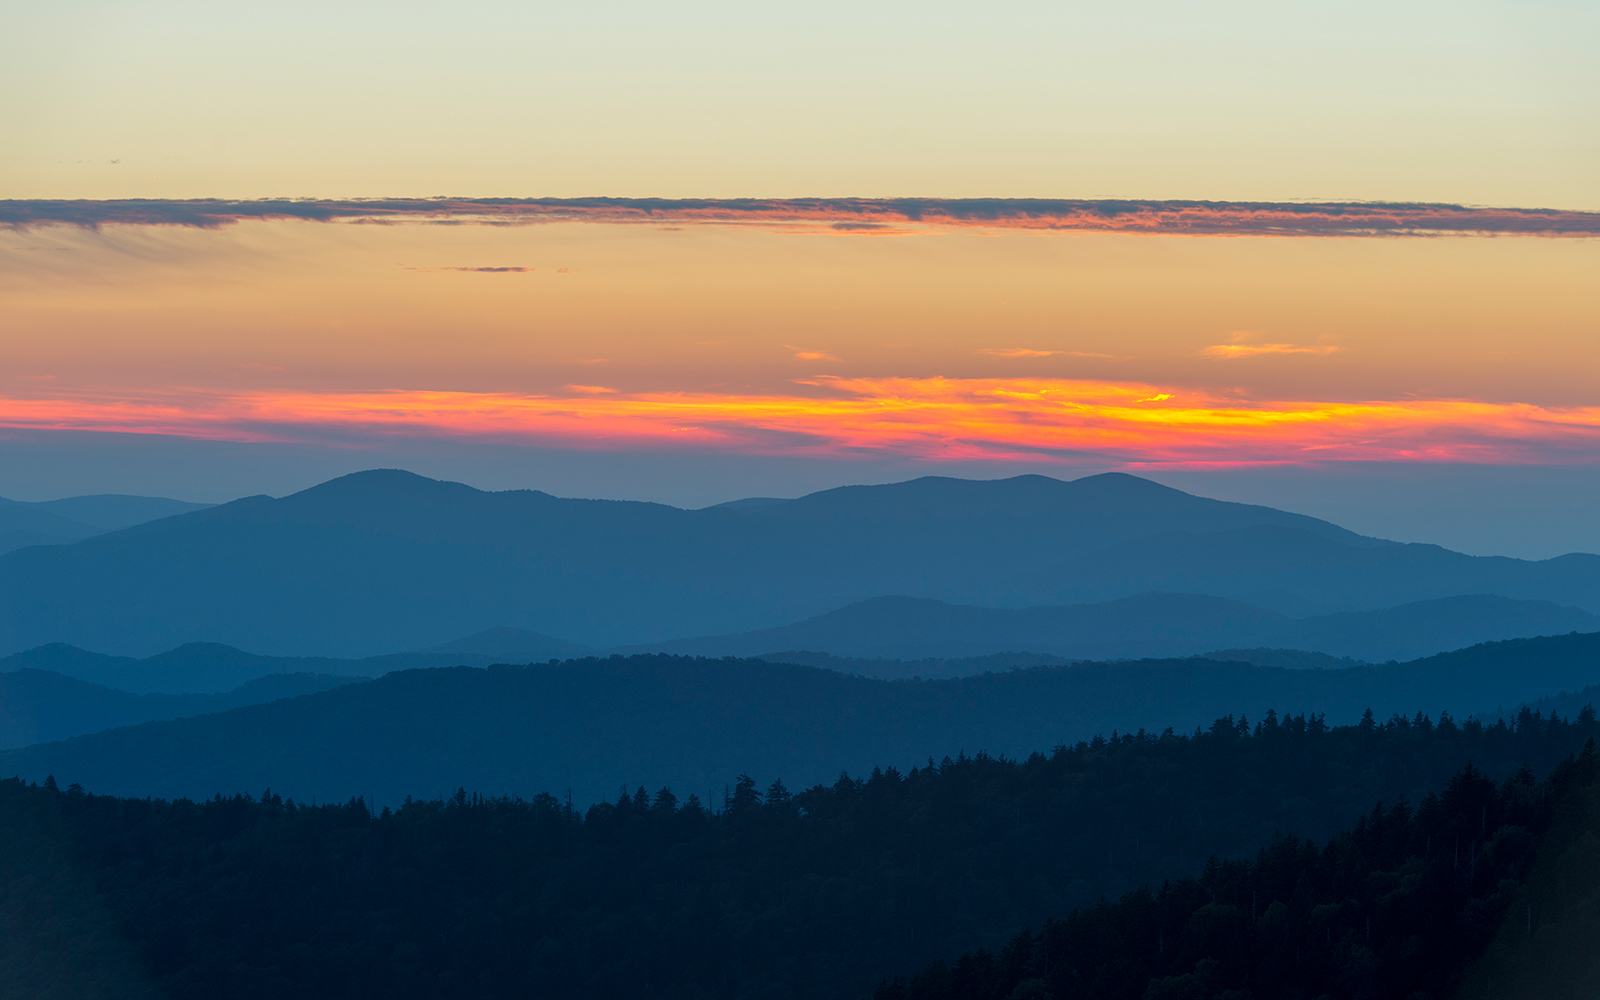 Best U.S. National Park Views: Clingmans Dome, Great Smoky Mountains National Park